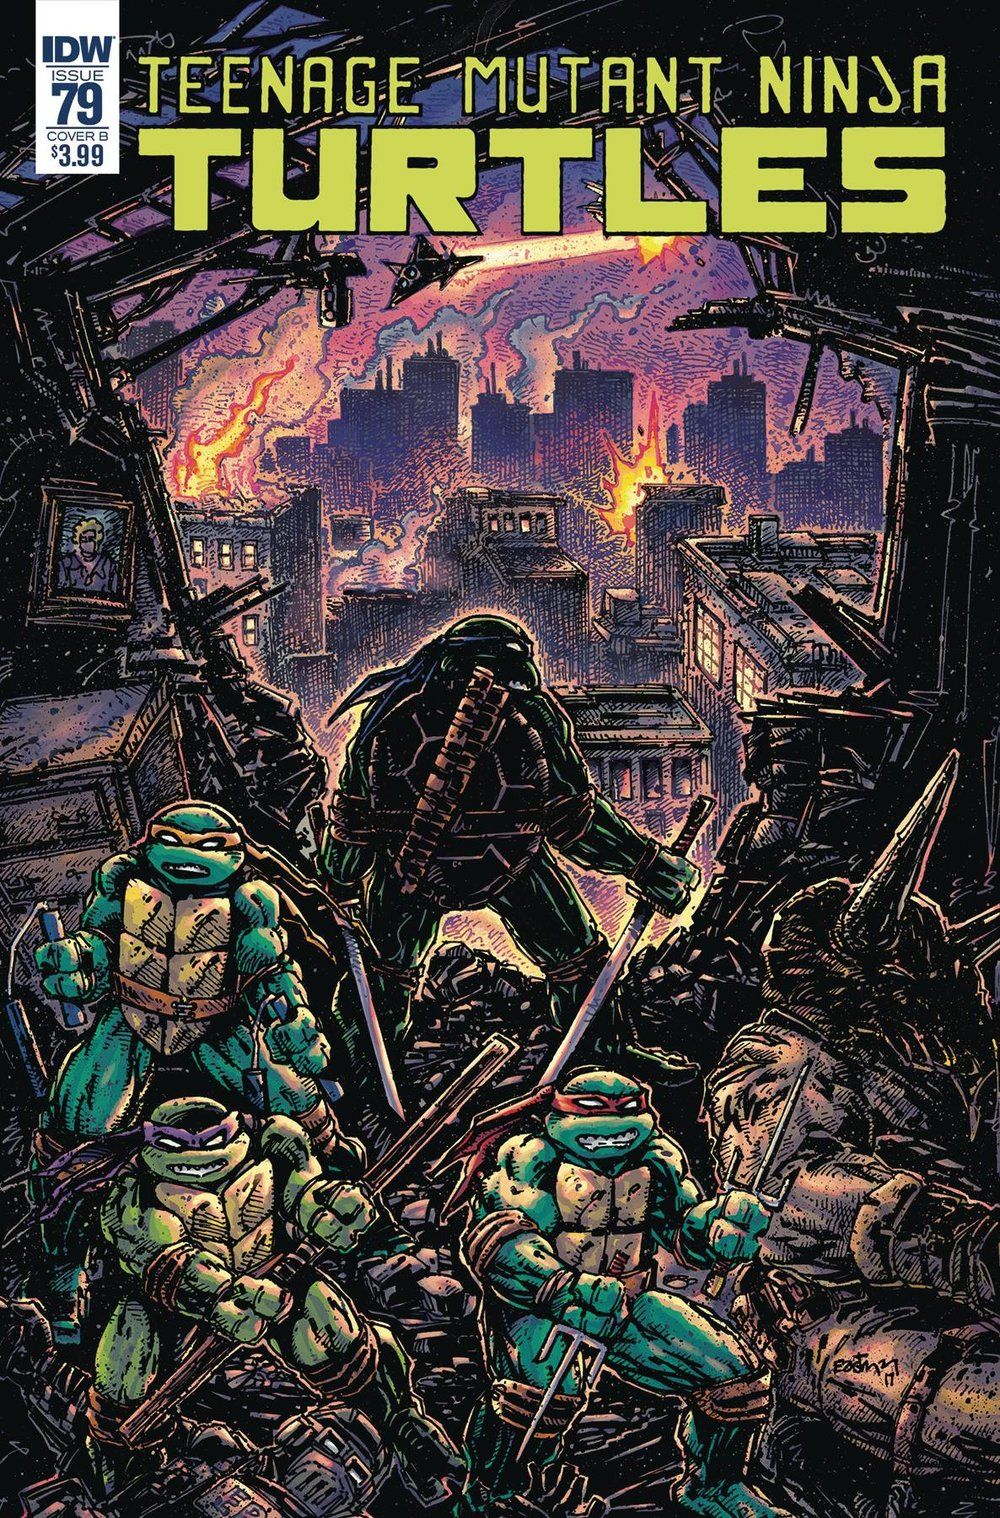 TMNT ONGOING 79 CVR B EASTMAN.jpg